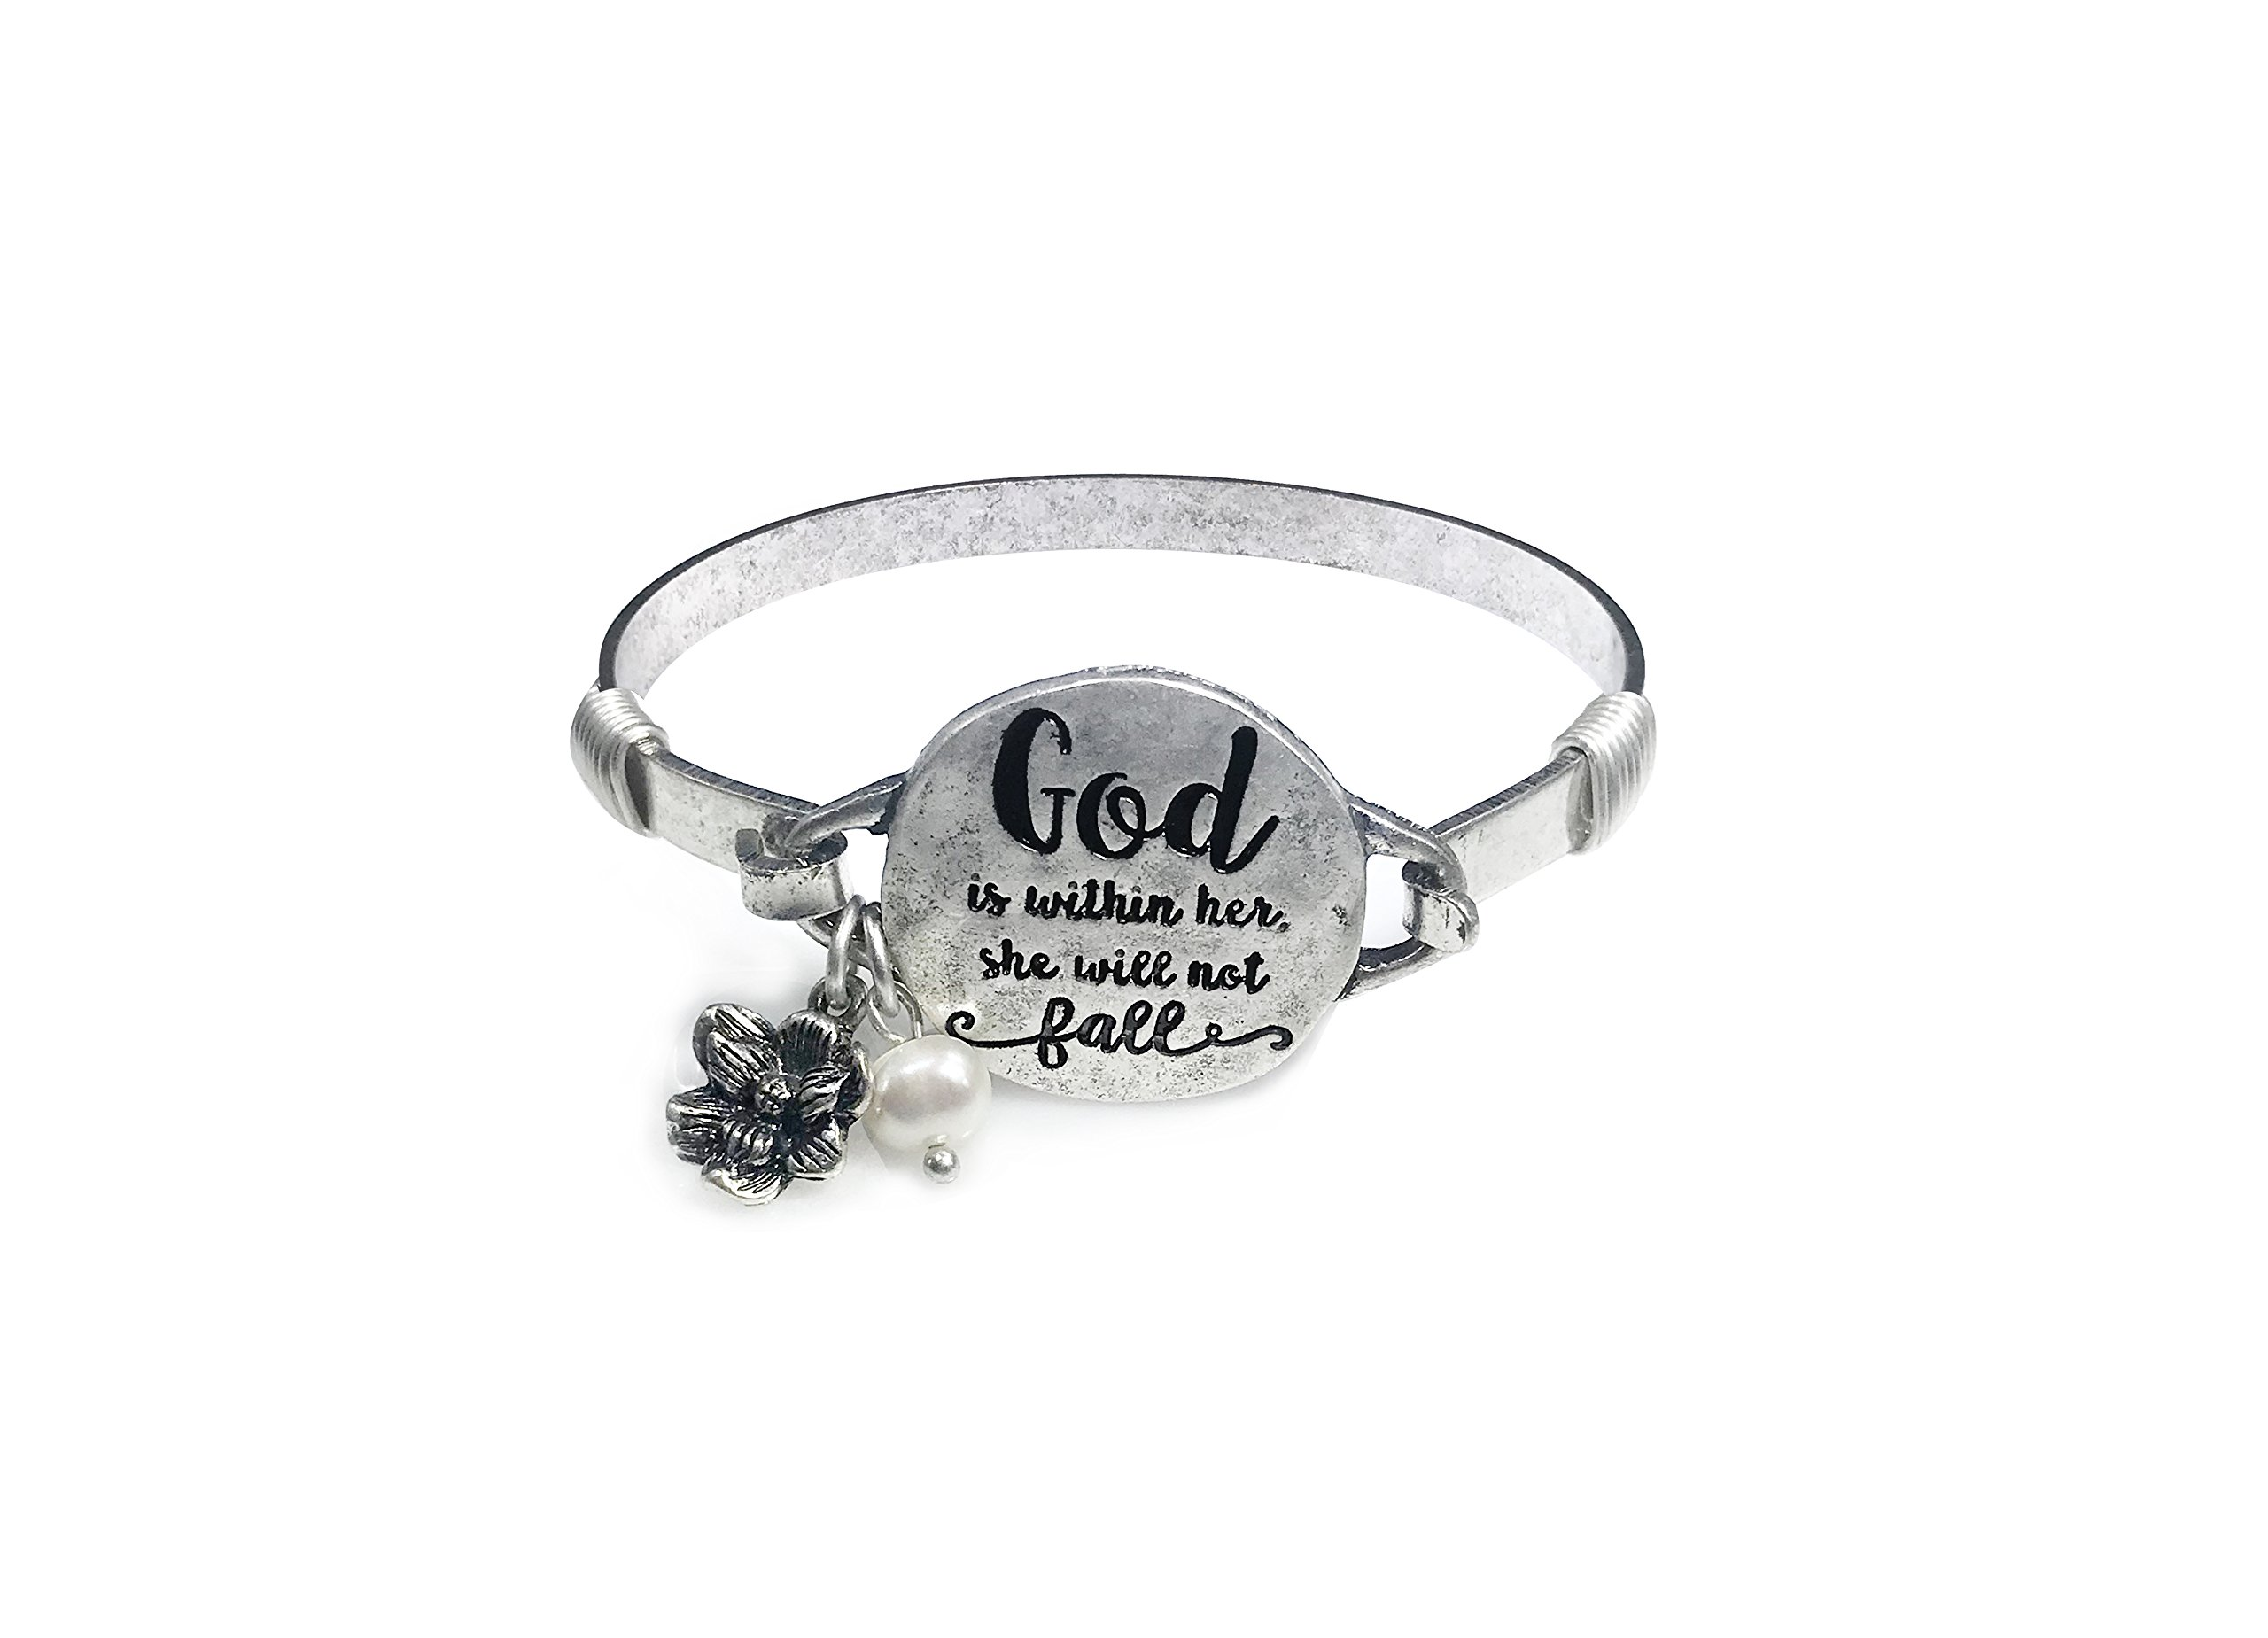 """Wonderent """"God is within her. She will not fall"""" Handmade Beautiful Christian Bangle Bracelet with Wire Design and Flower Charm and Bead"""